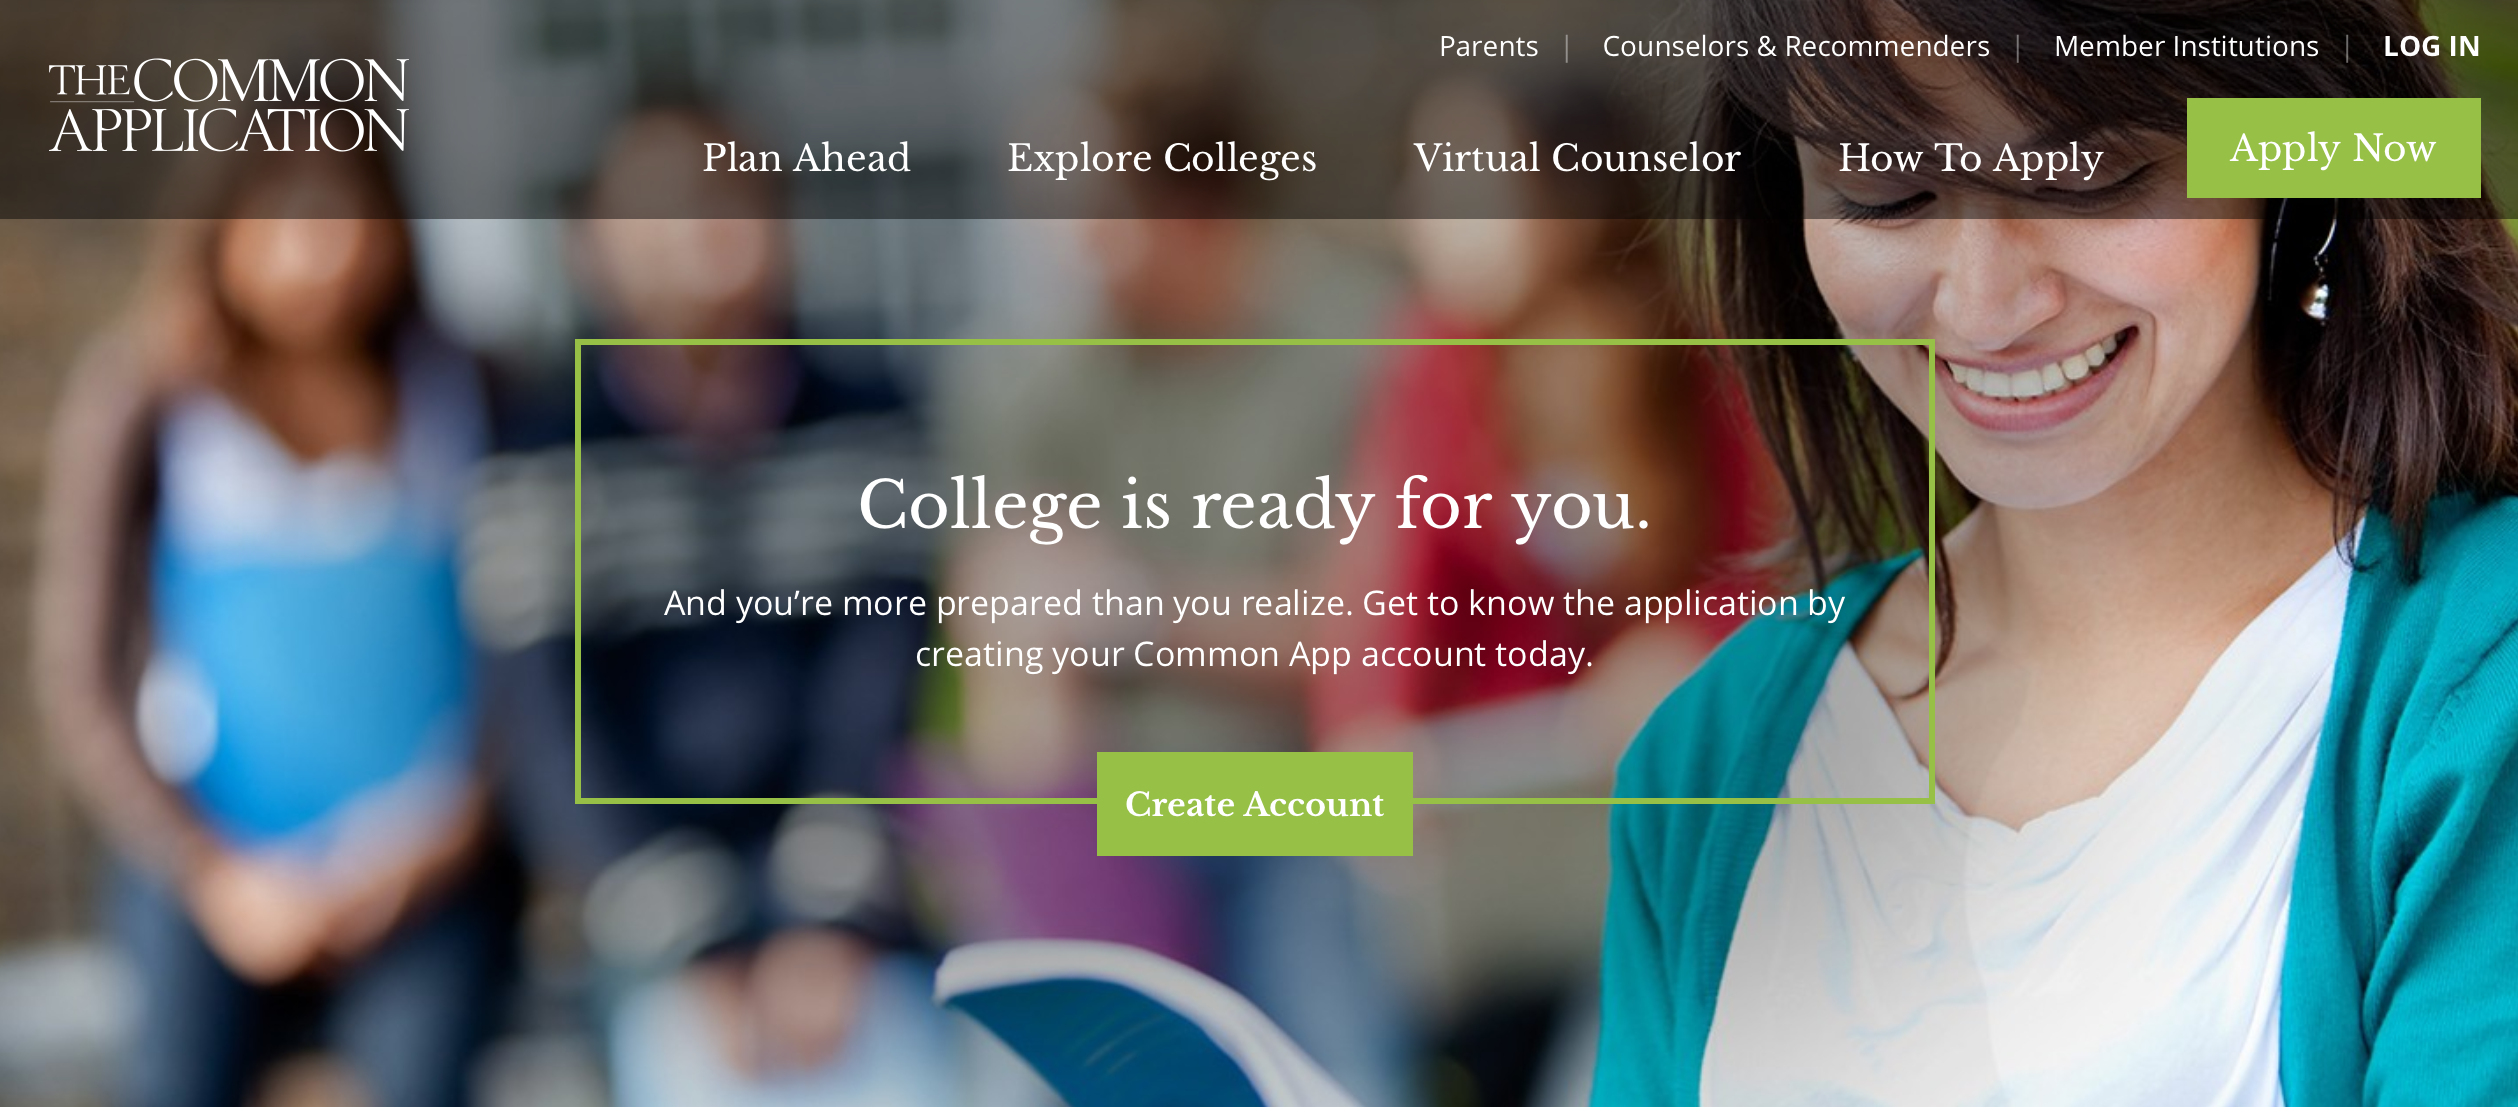 2016-17 common application changes